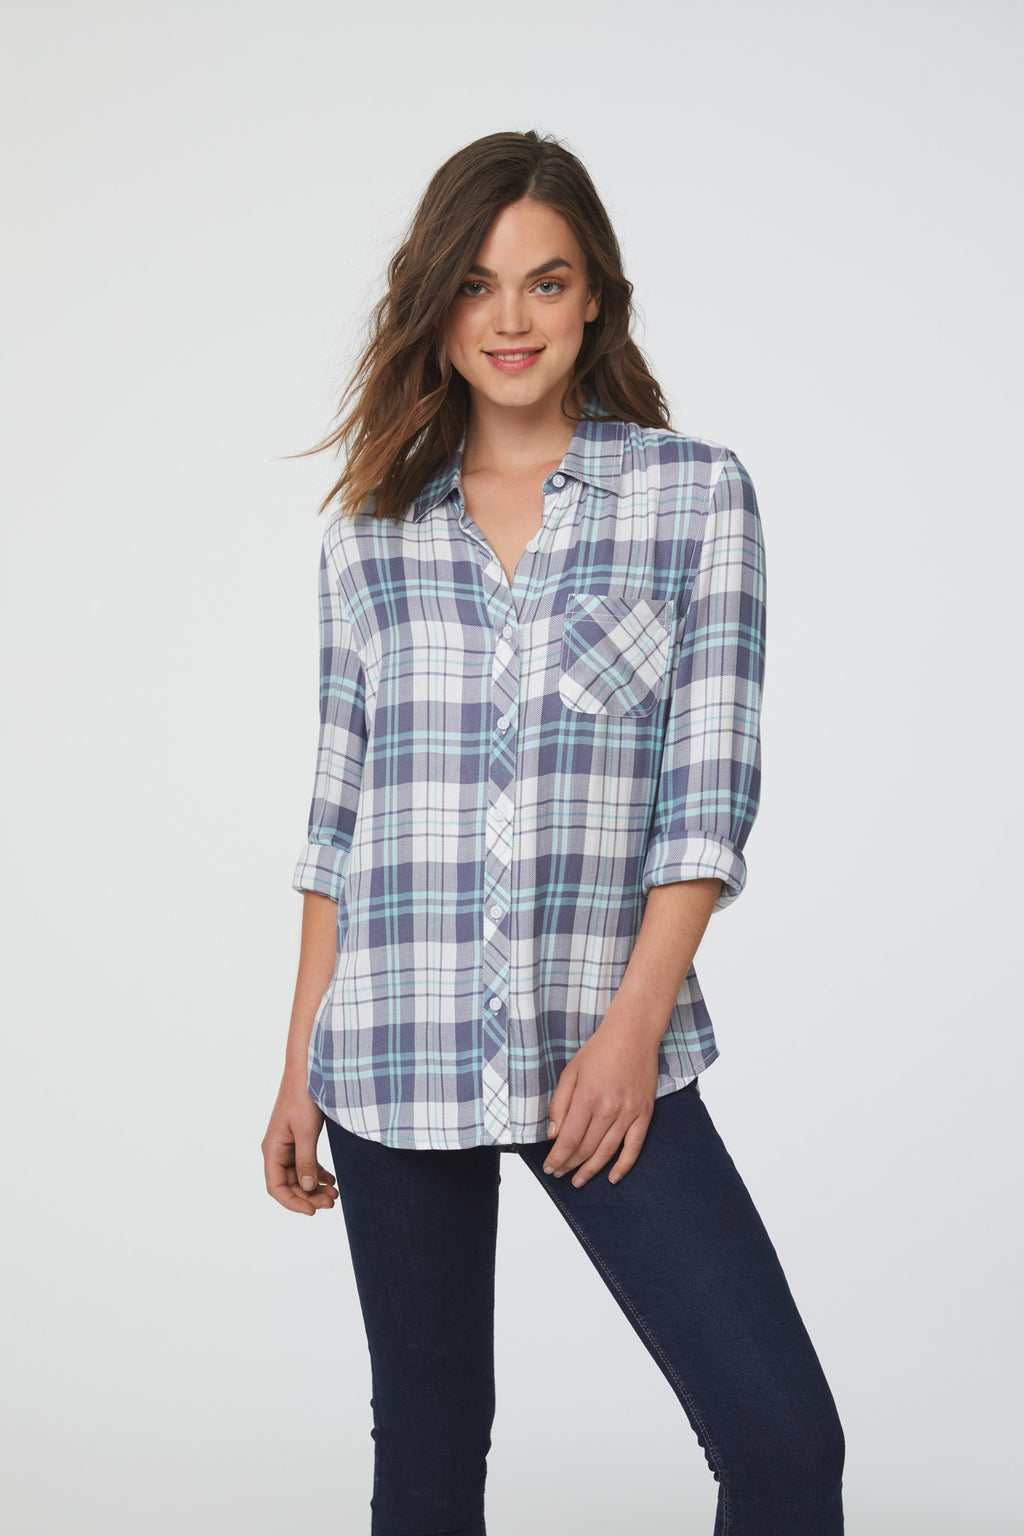 woman wearing a long sleeve, white, purple and blue plaid, button-down shirt with single chest pocket